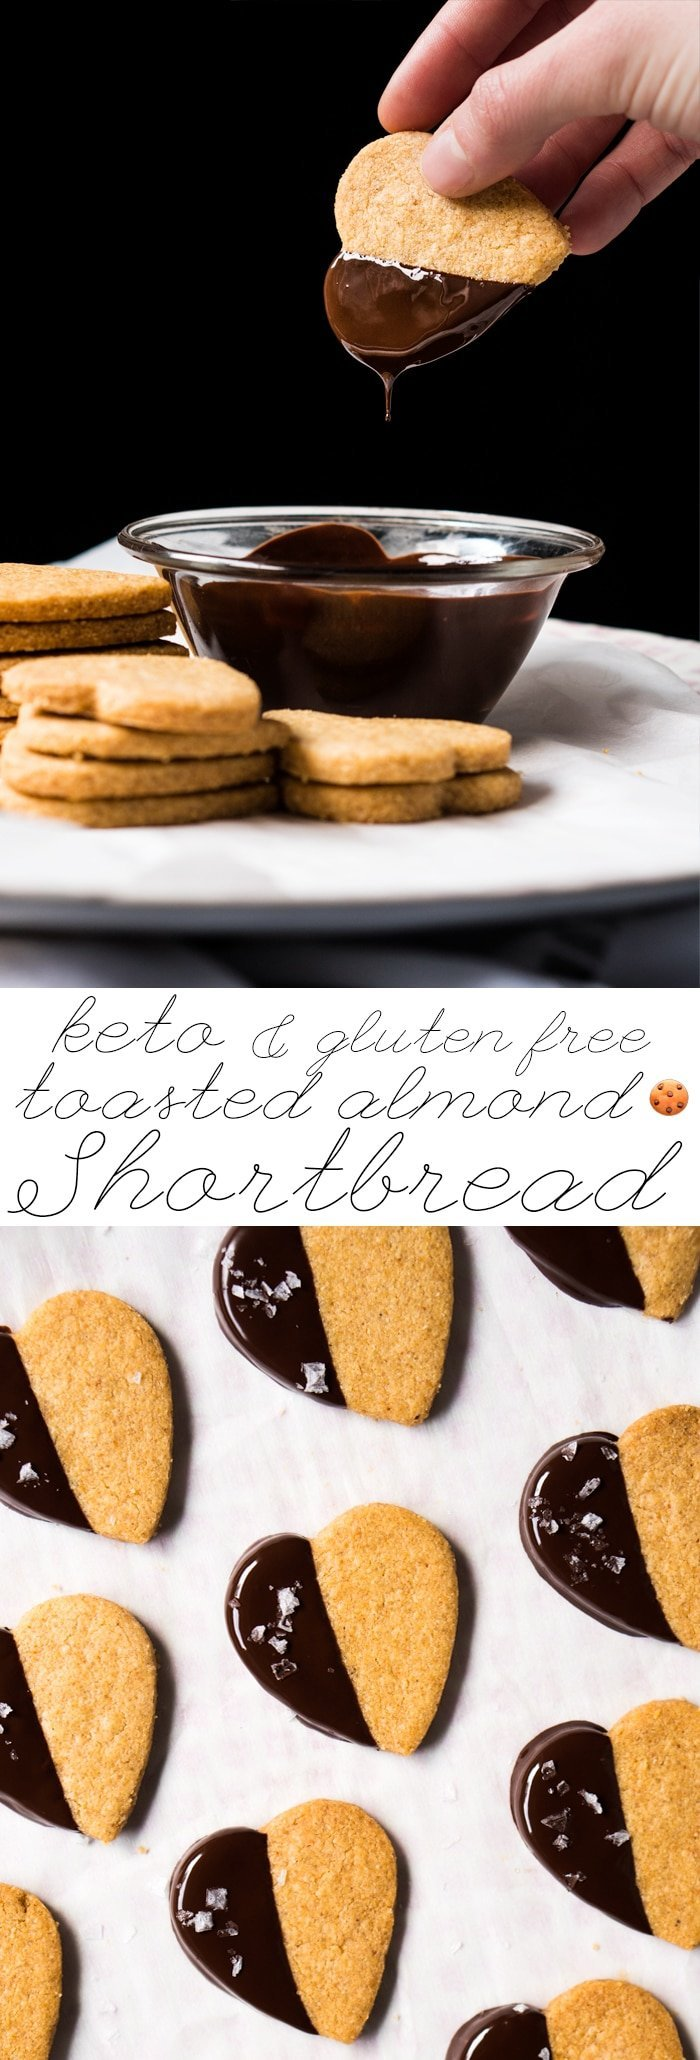 Toasted Almond Gluten Free, Grain Free & Keto Shortbread Cookies 🍪 Less than 1g net carbs a pop! #ketocookies #ketosweettreats #ketoshortbread